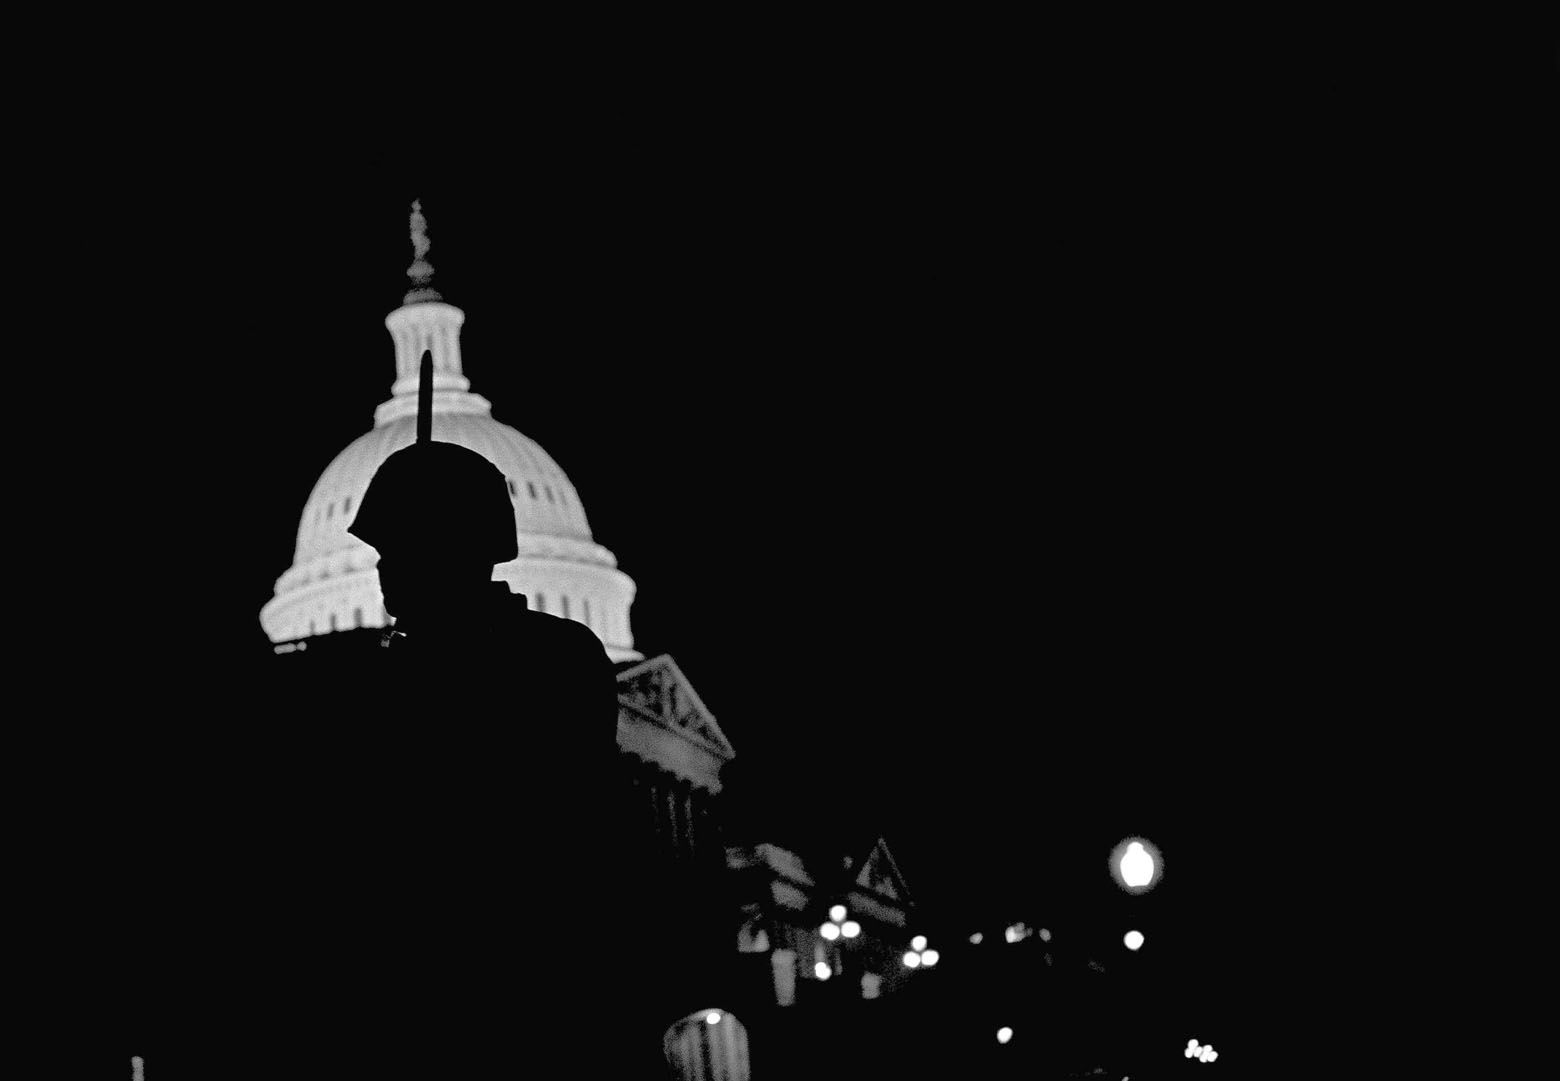 A soldier with bayonet showing above his helmet is silhouetted as he stands guard at the nation's capitol in Washington, April 8, 1968. He was one of thousands of Federal troops on duty in Washington in wake of looting and rioting. (AP Photo/Charles Harrity)